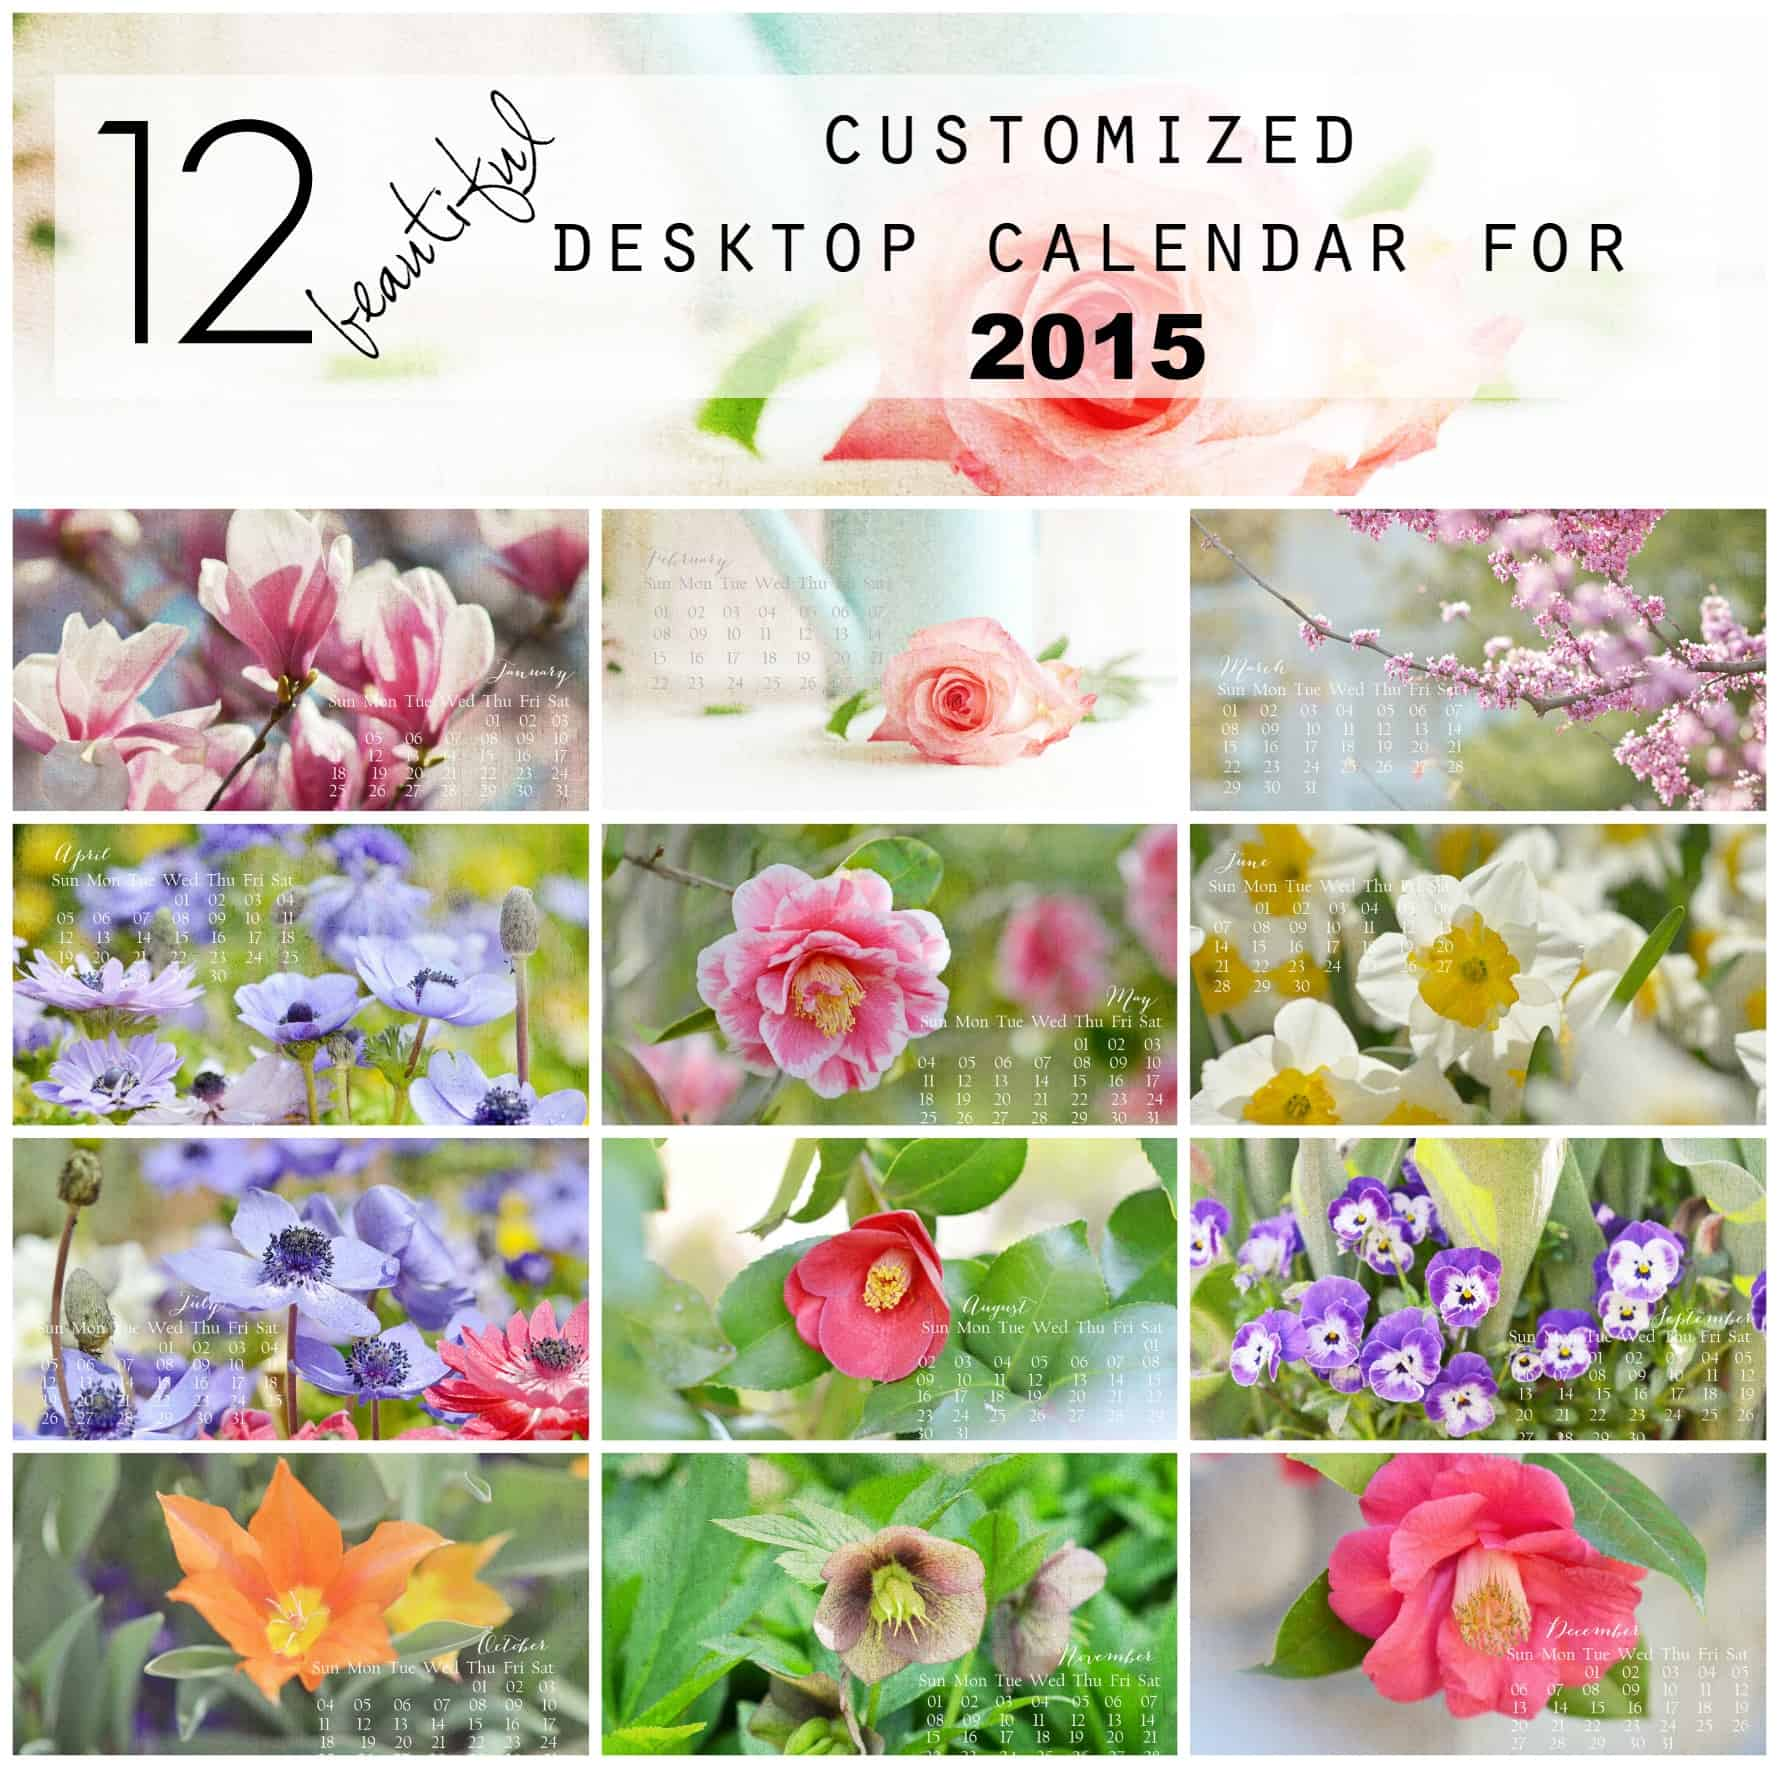 12 beautiful customized desktop calendar